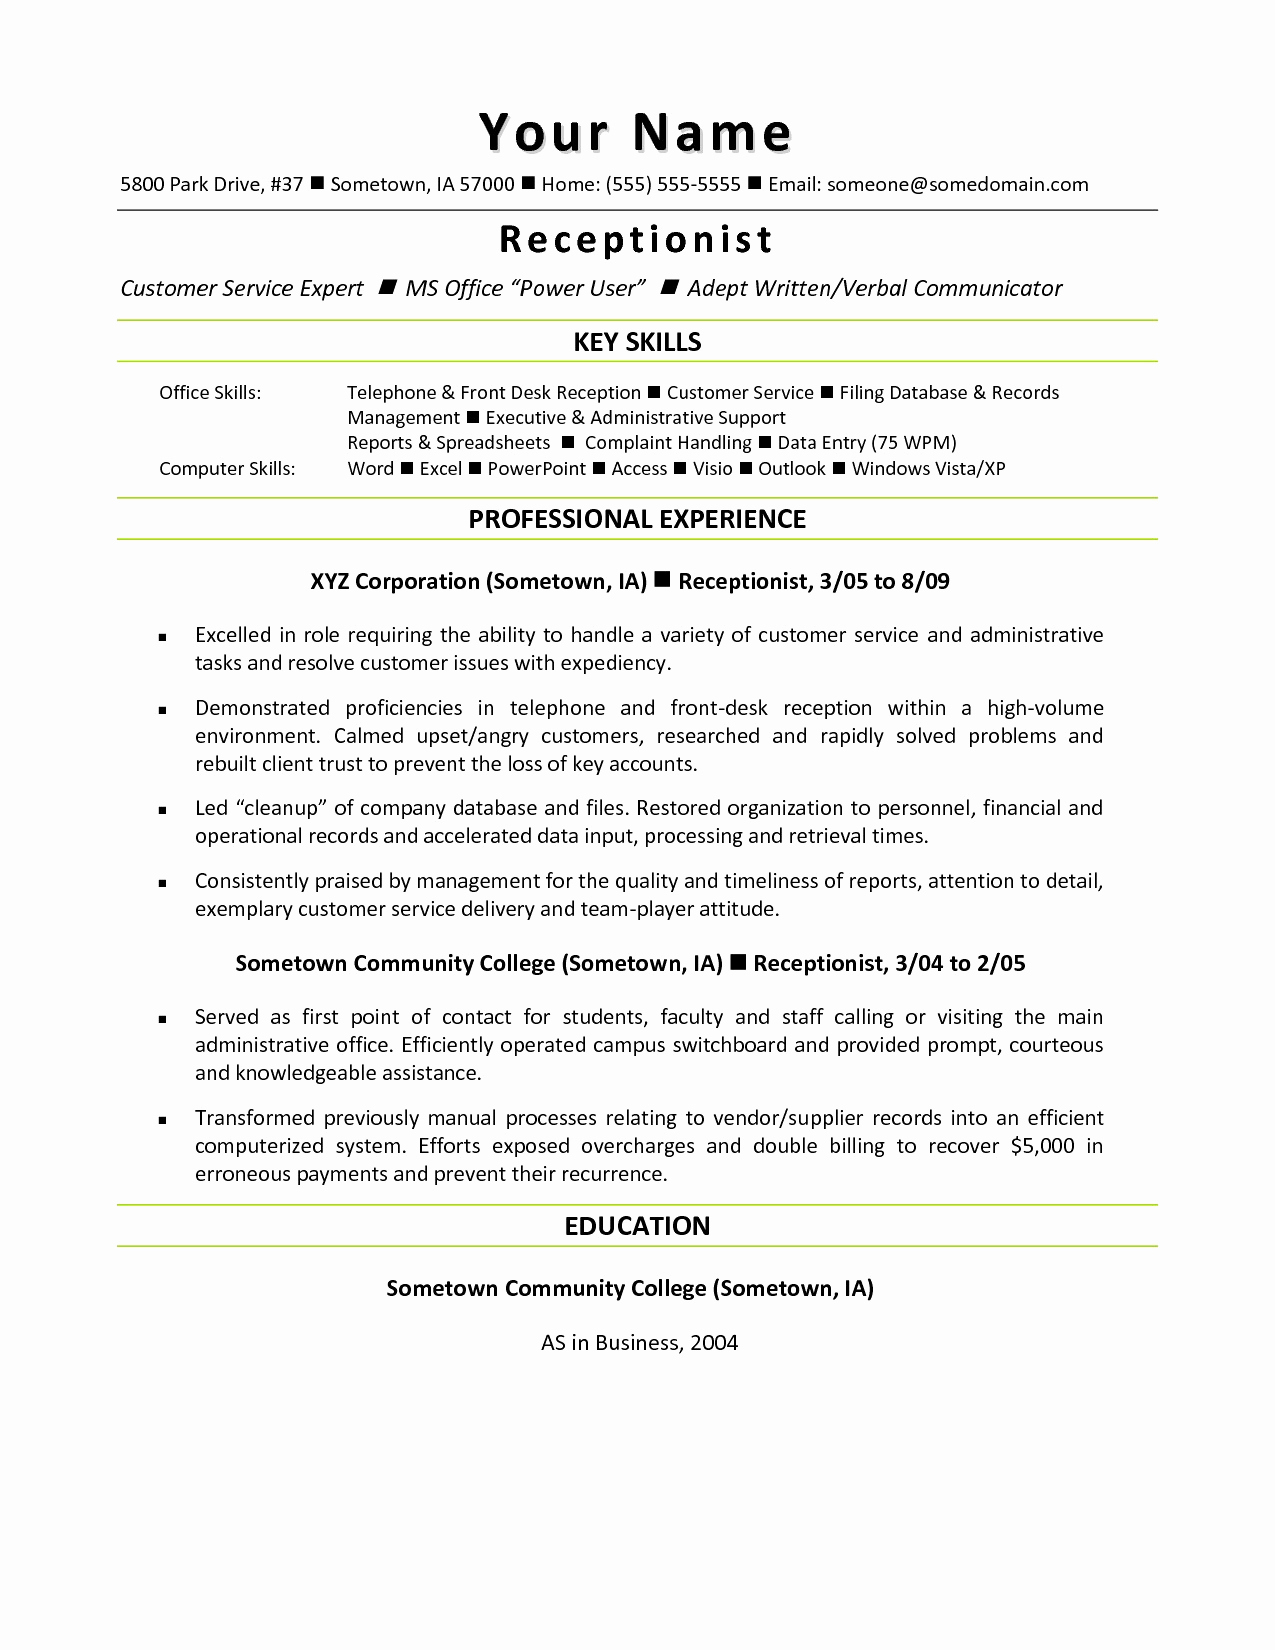 Monster Cover Letter Template - Monster Cover Letter Tips Inspirational Sample Puter Skills for